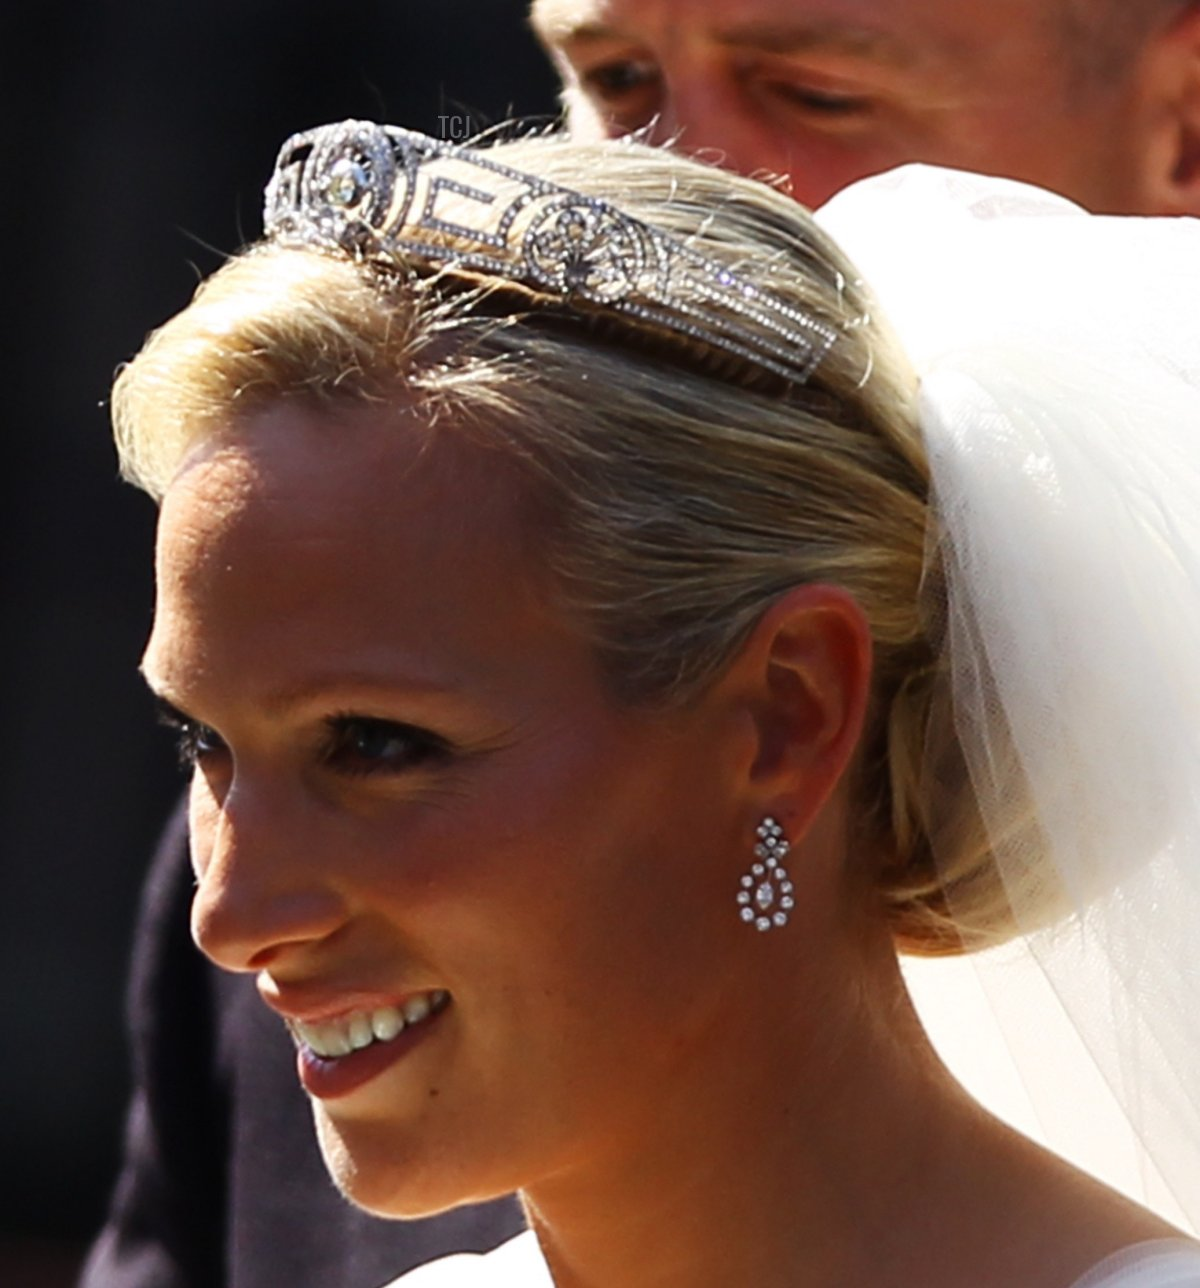 Zara Phillips departs afterher Royal wedding to Mike Tindall at Canongate Kirk on July 30, 2011 in Edinburgh, Scotland